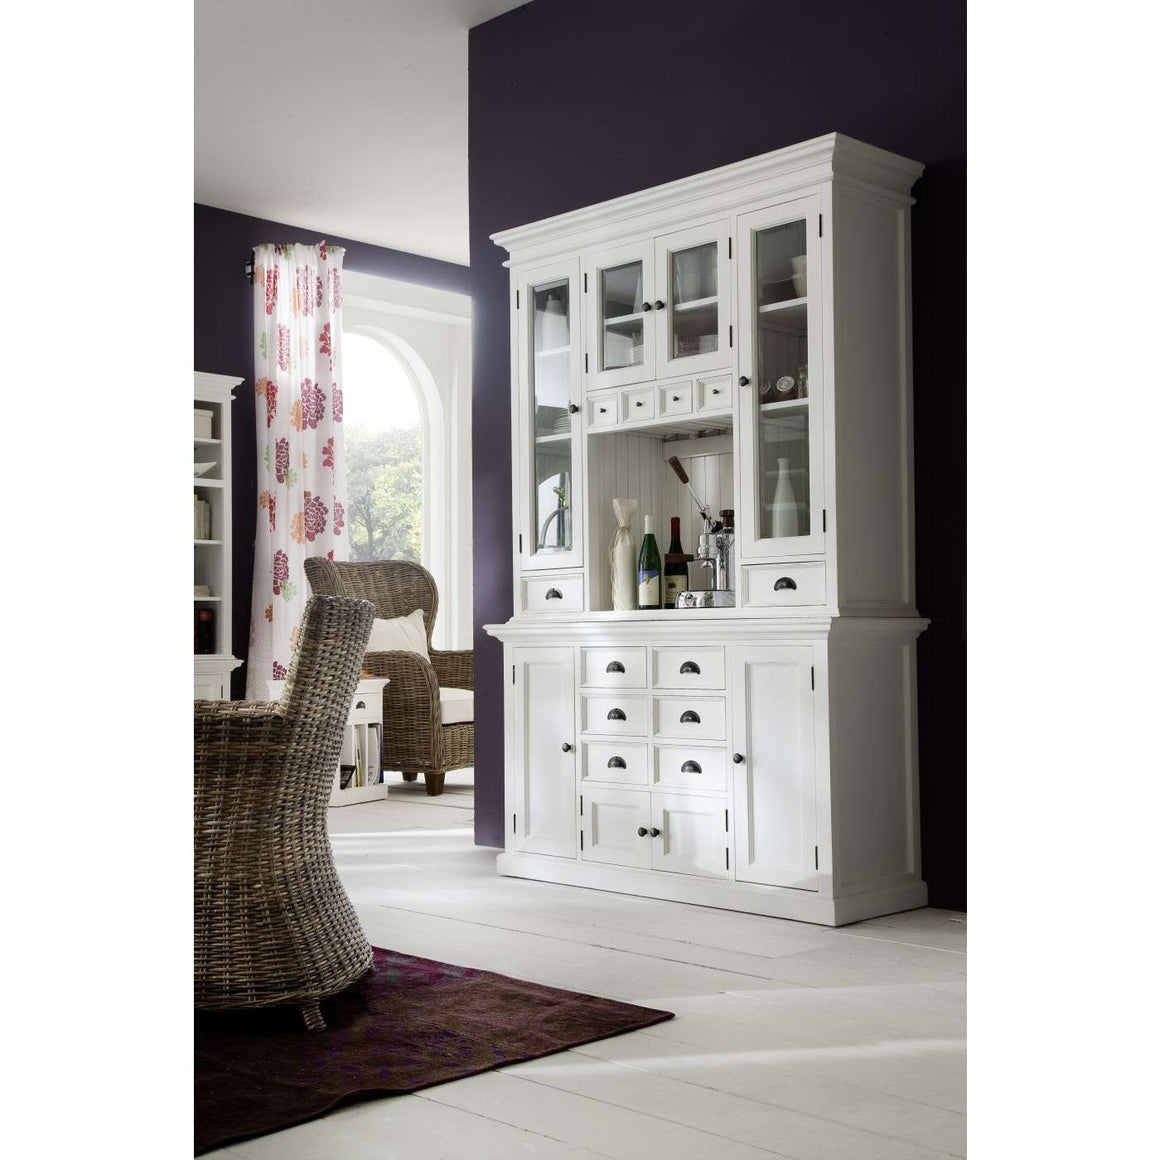 Halifax BCA597 Kitchen Hutch Unit